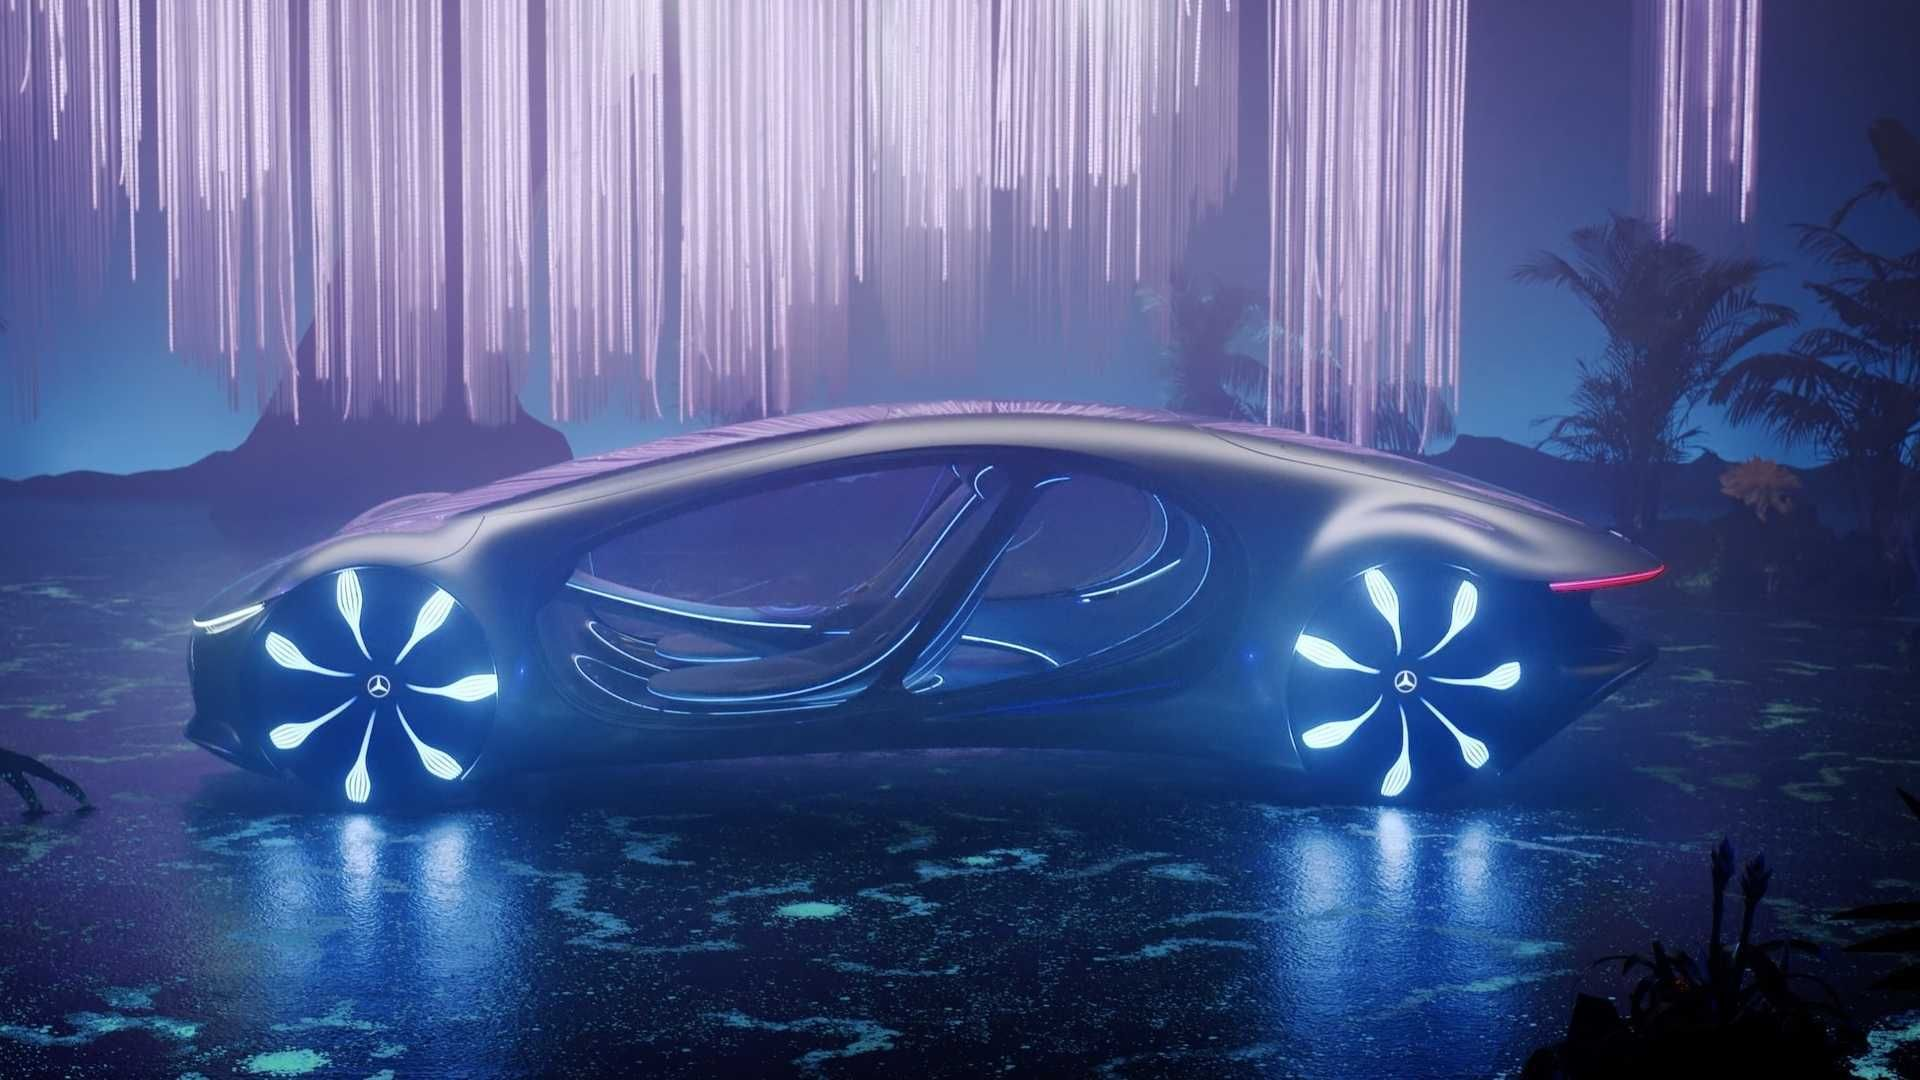 Highly Grossing James Cameron Movie The 2009 Avatar Inspires Mercedes Benz To Make A Concept Car The Vision Avtr We Get It All St In 2020 Mercedes Benz Mercedes Benz